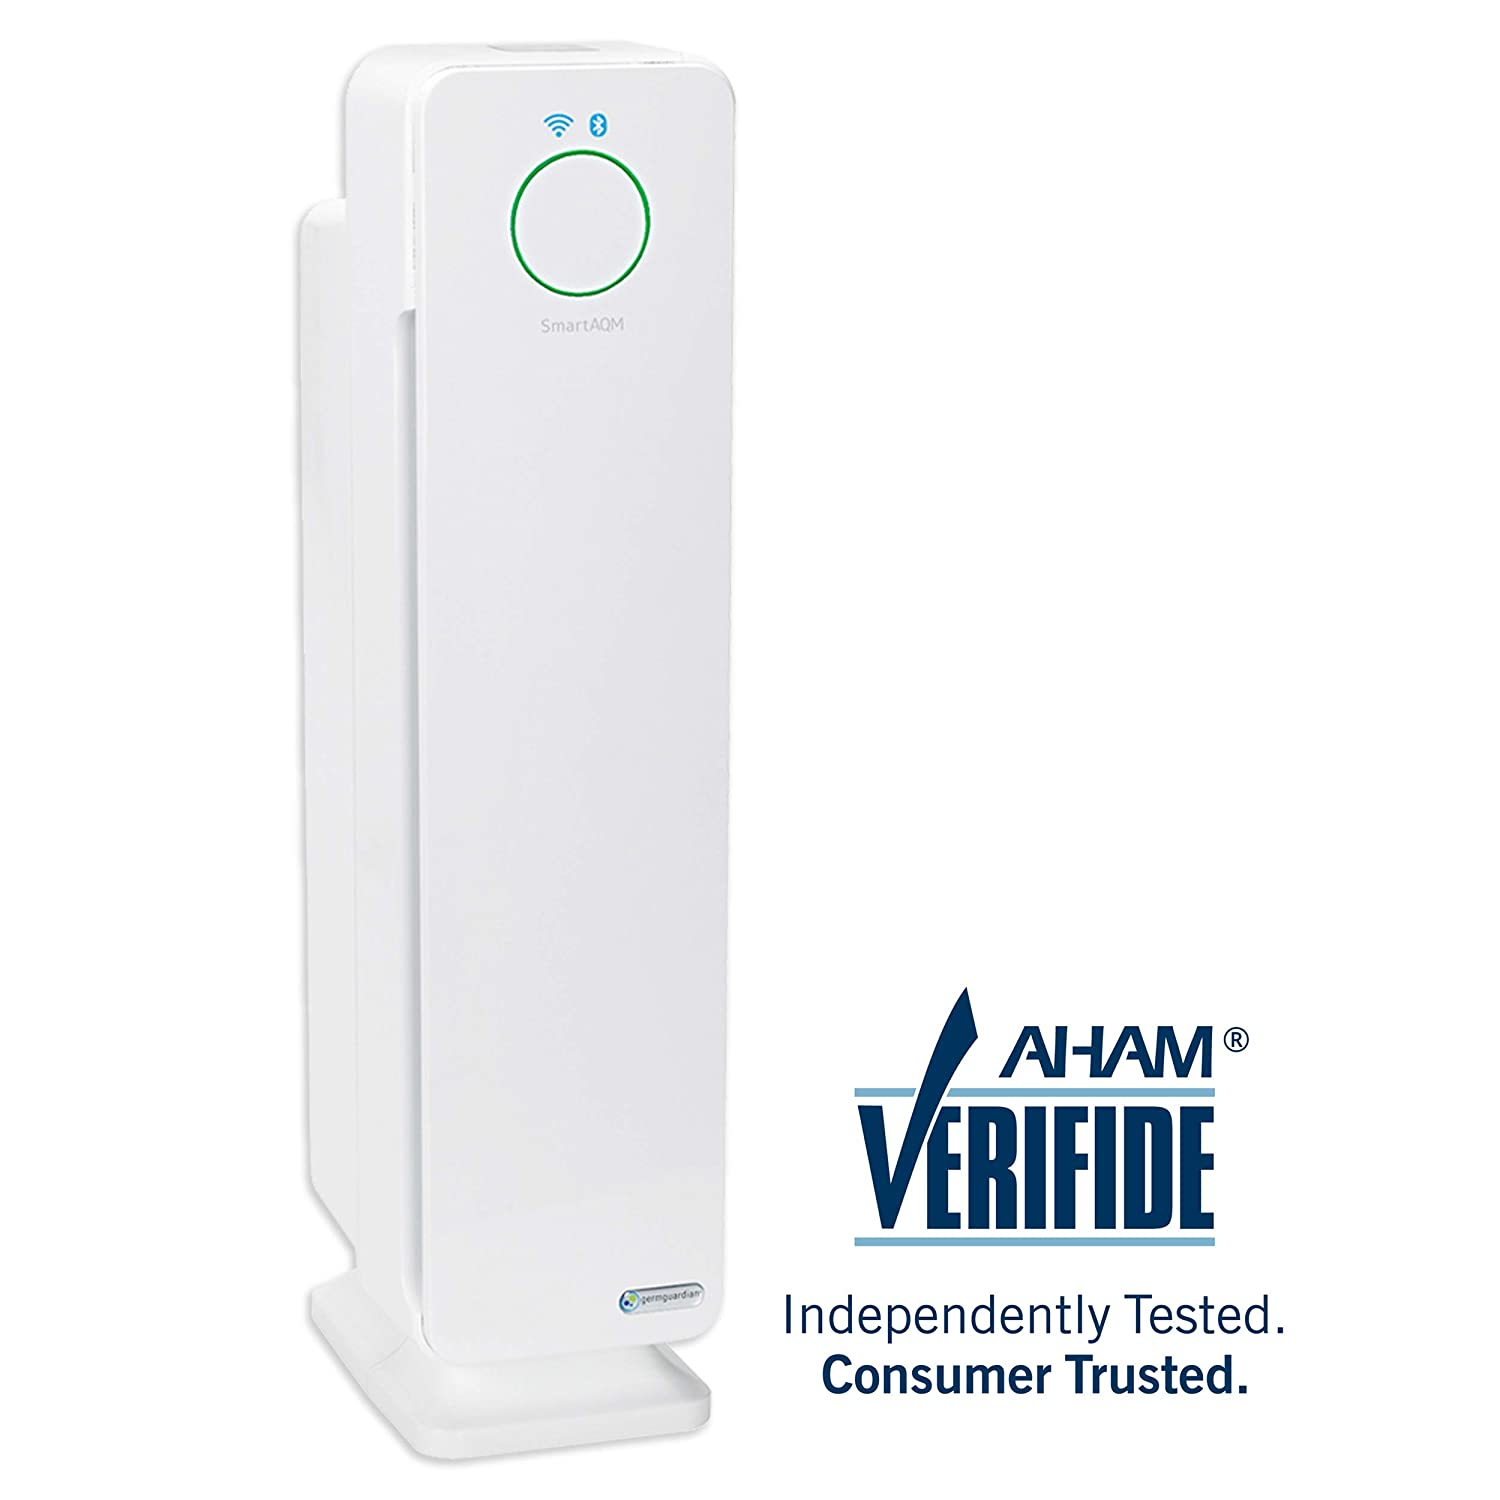 "GermGuardian CDAP5500WSP 28"" 4-in-1 WiFi Smart Air Purifier, Air Quality Monitor, Voice Control,True HEPA Filter, UVC Sanitizer, Traps Allergens,Smoke,Odors,Mold, Dust,Germs,5Y Warranty Germ Guardian GUAUN"